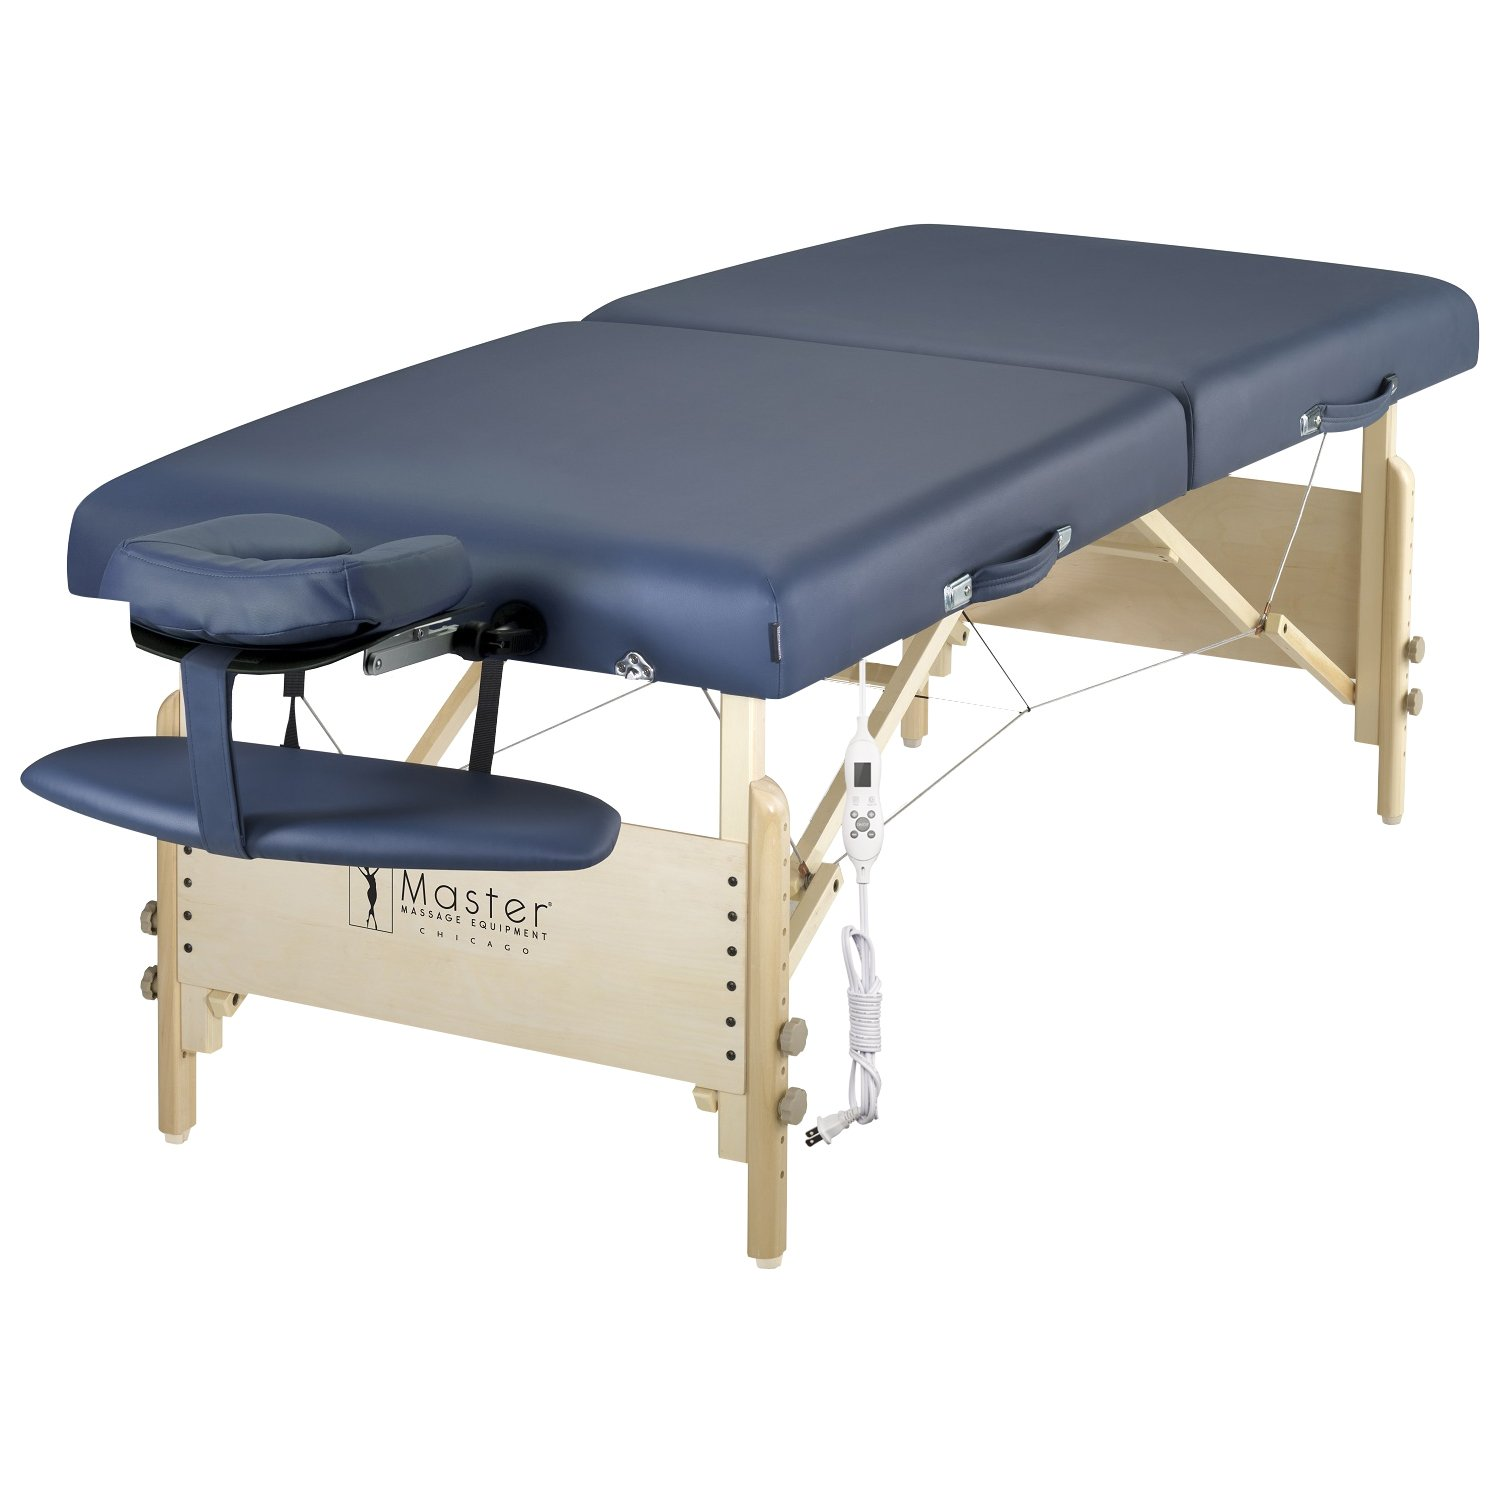 Master Massage 30'' Coronado Therma Top LX Portable Massage Table Package, Royal Blue